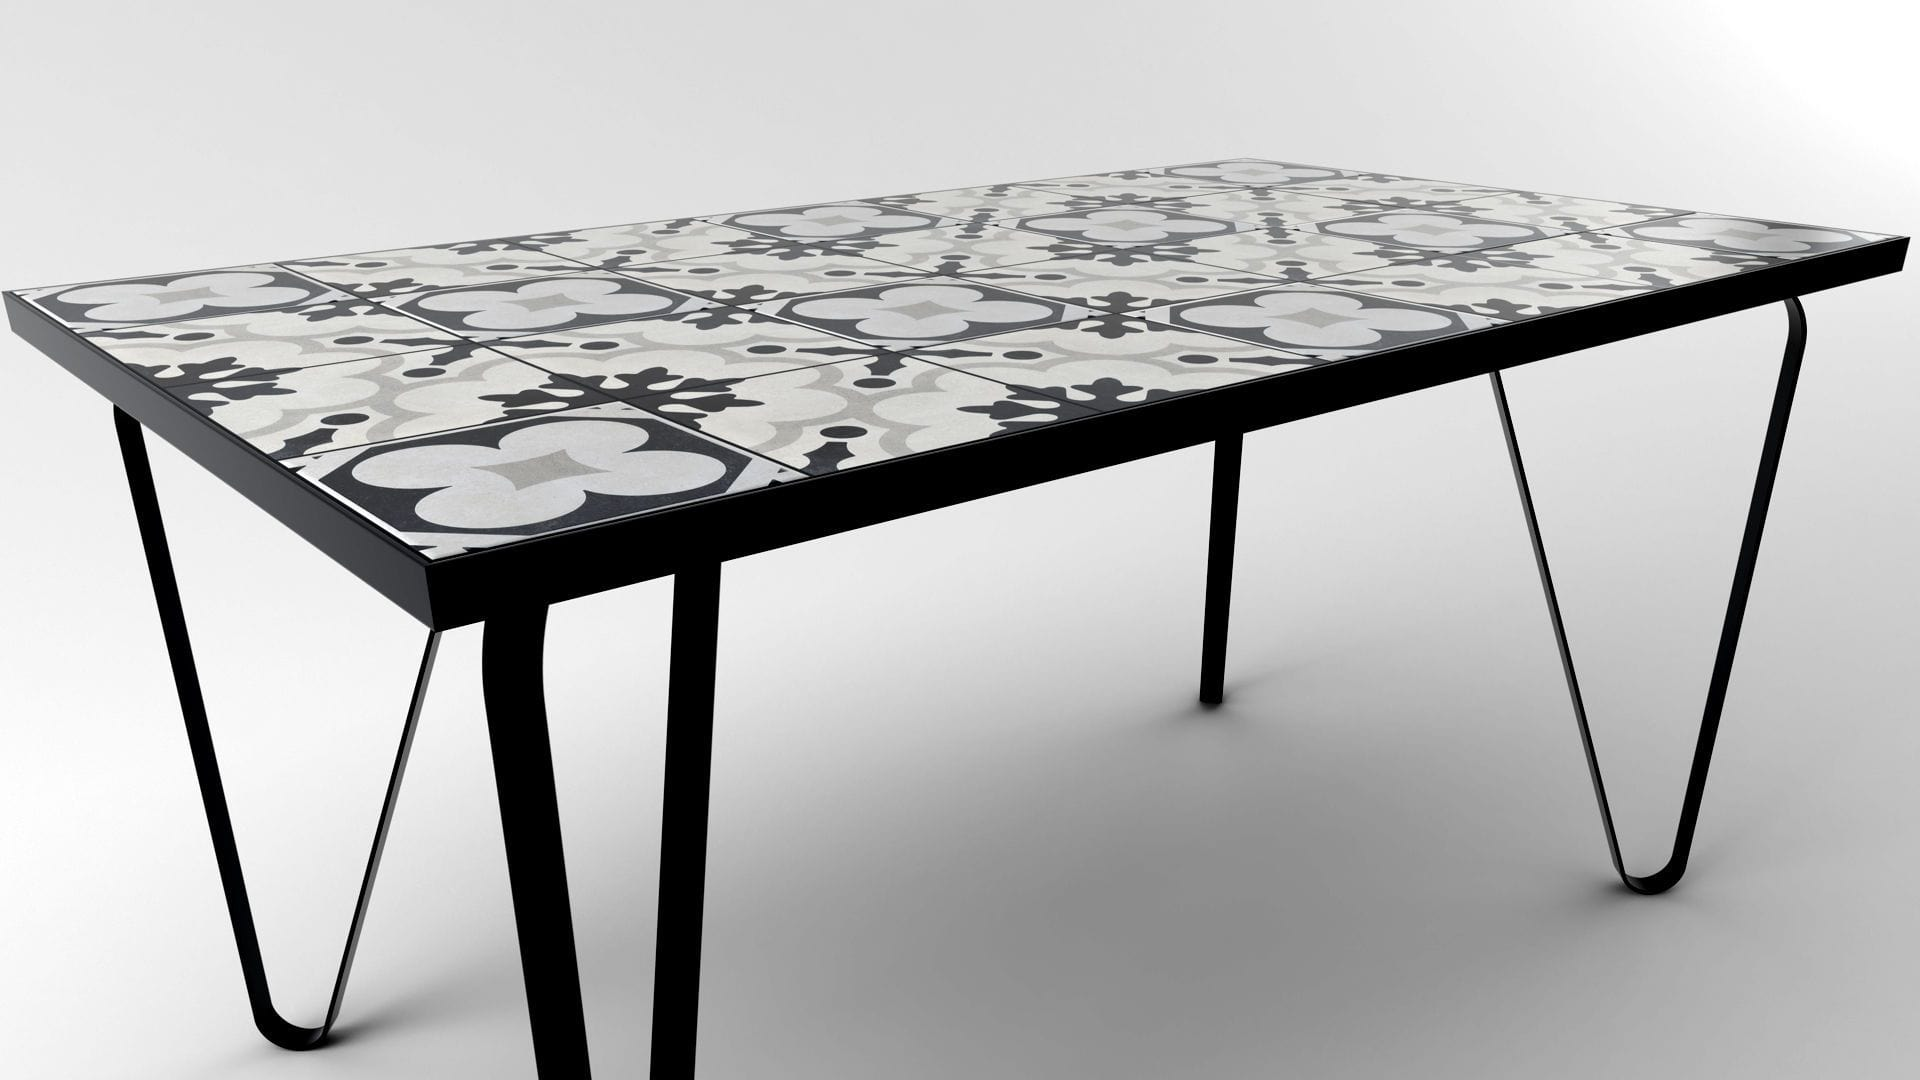 Ceramic tile table with black legs and italian tiles - Antonella